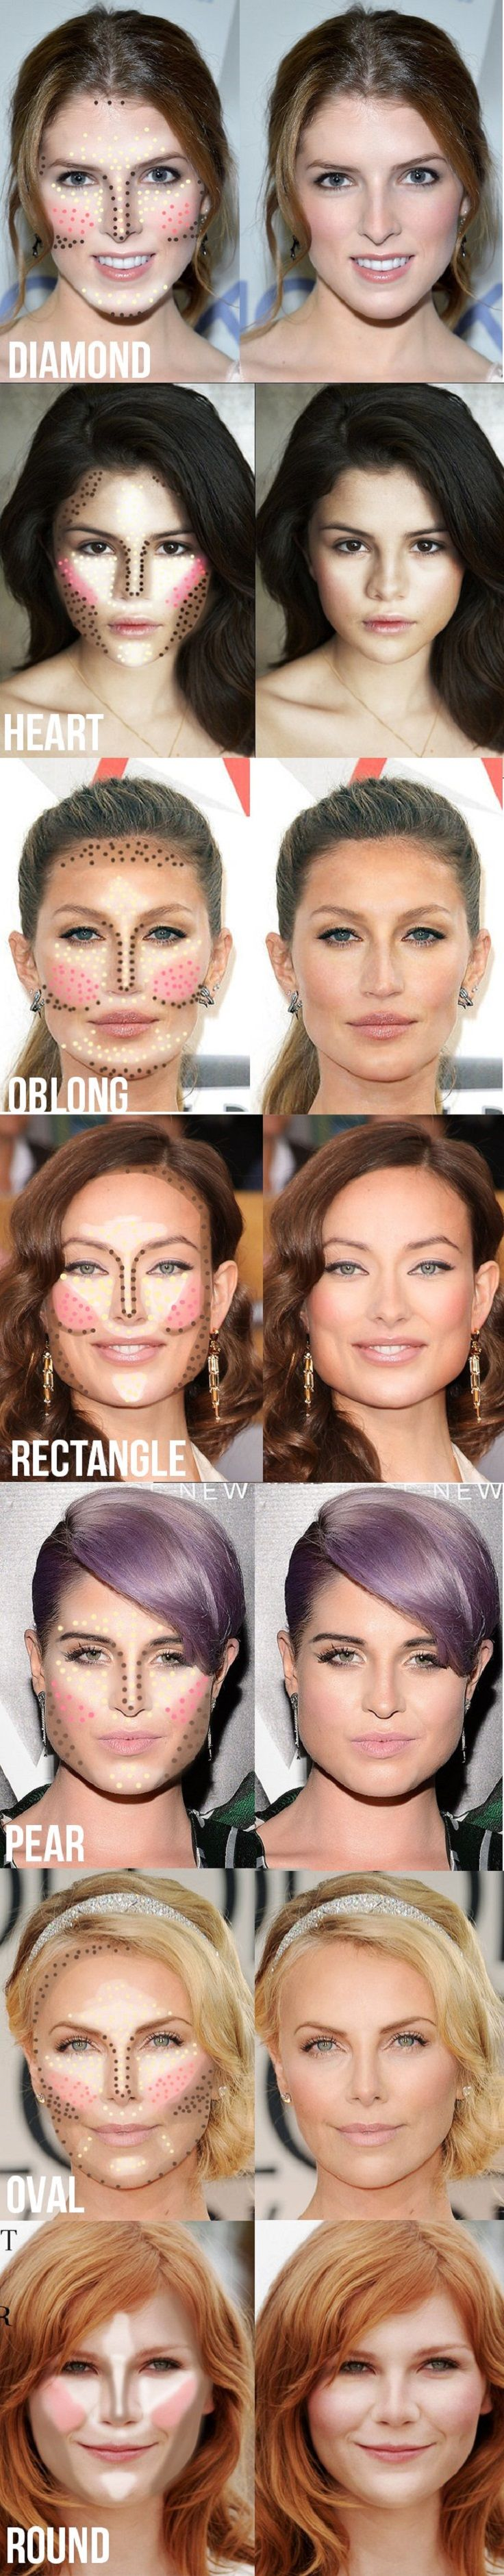 Contouring and Highlighting Tips for Your Face Shape - 13 Best Makeup Tutorials ...